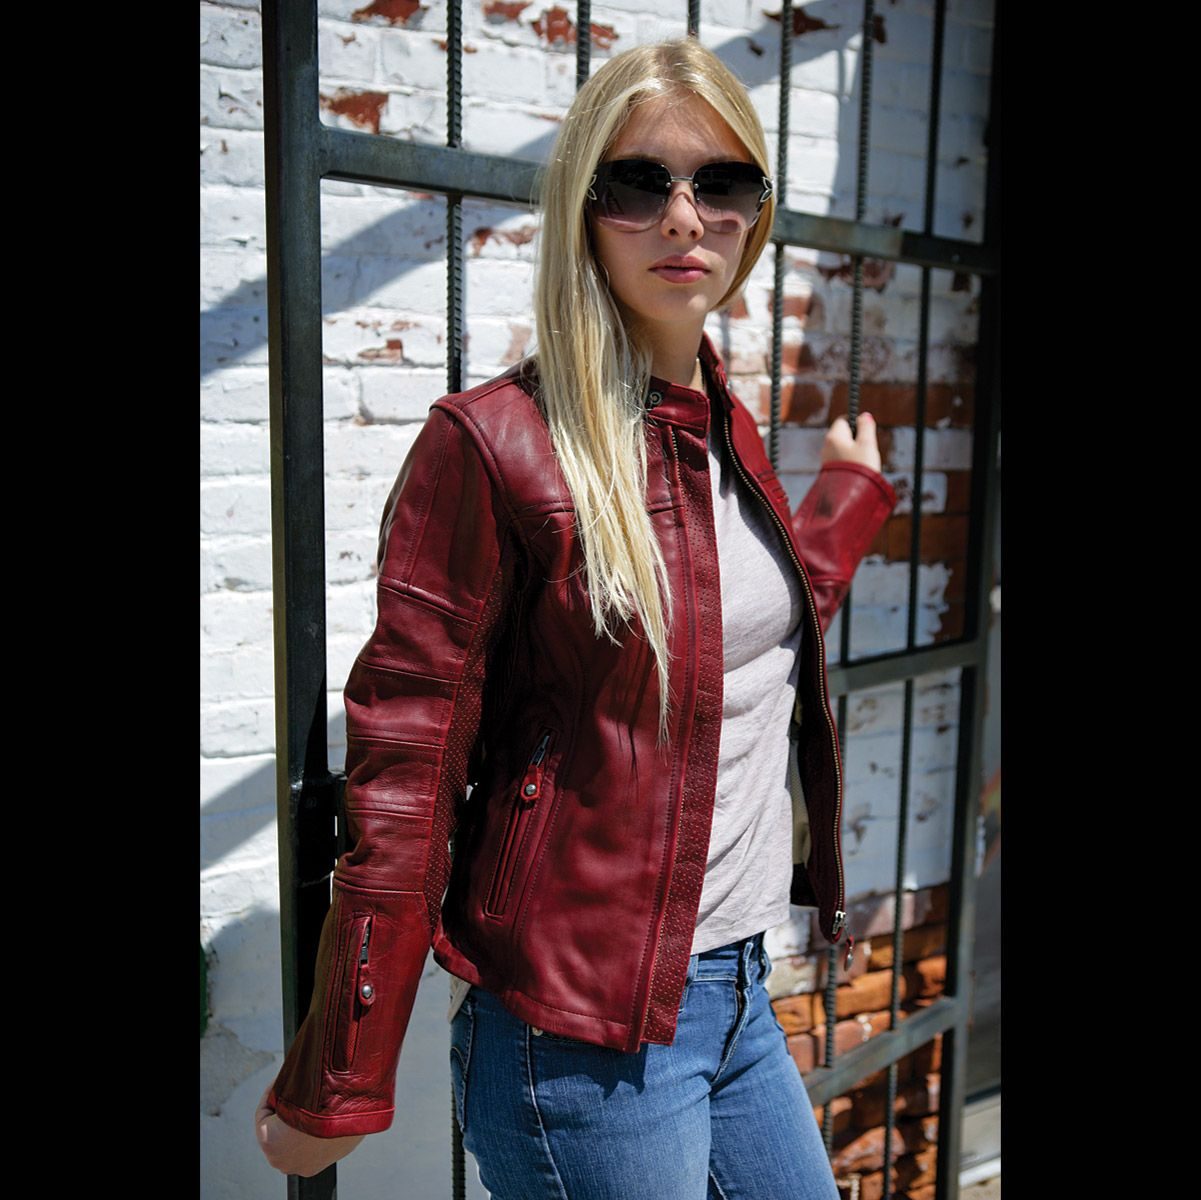 Roland Sands Maven Womens Jacket This Is The Female Version Of The Ronin For Men Red Leather Jacket Leather Jacket Oxblood Red [ 1200 x 1201 Pixel ]